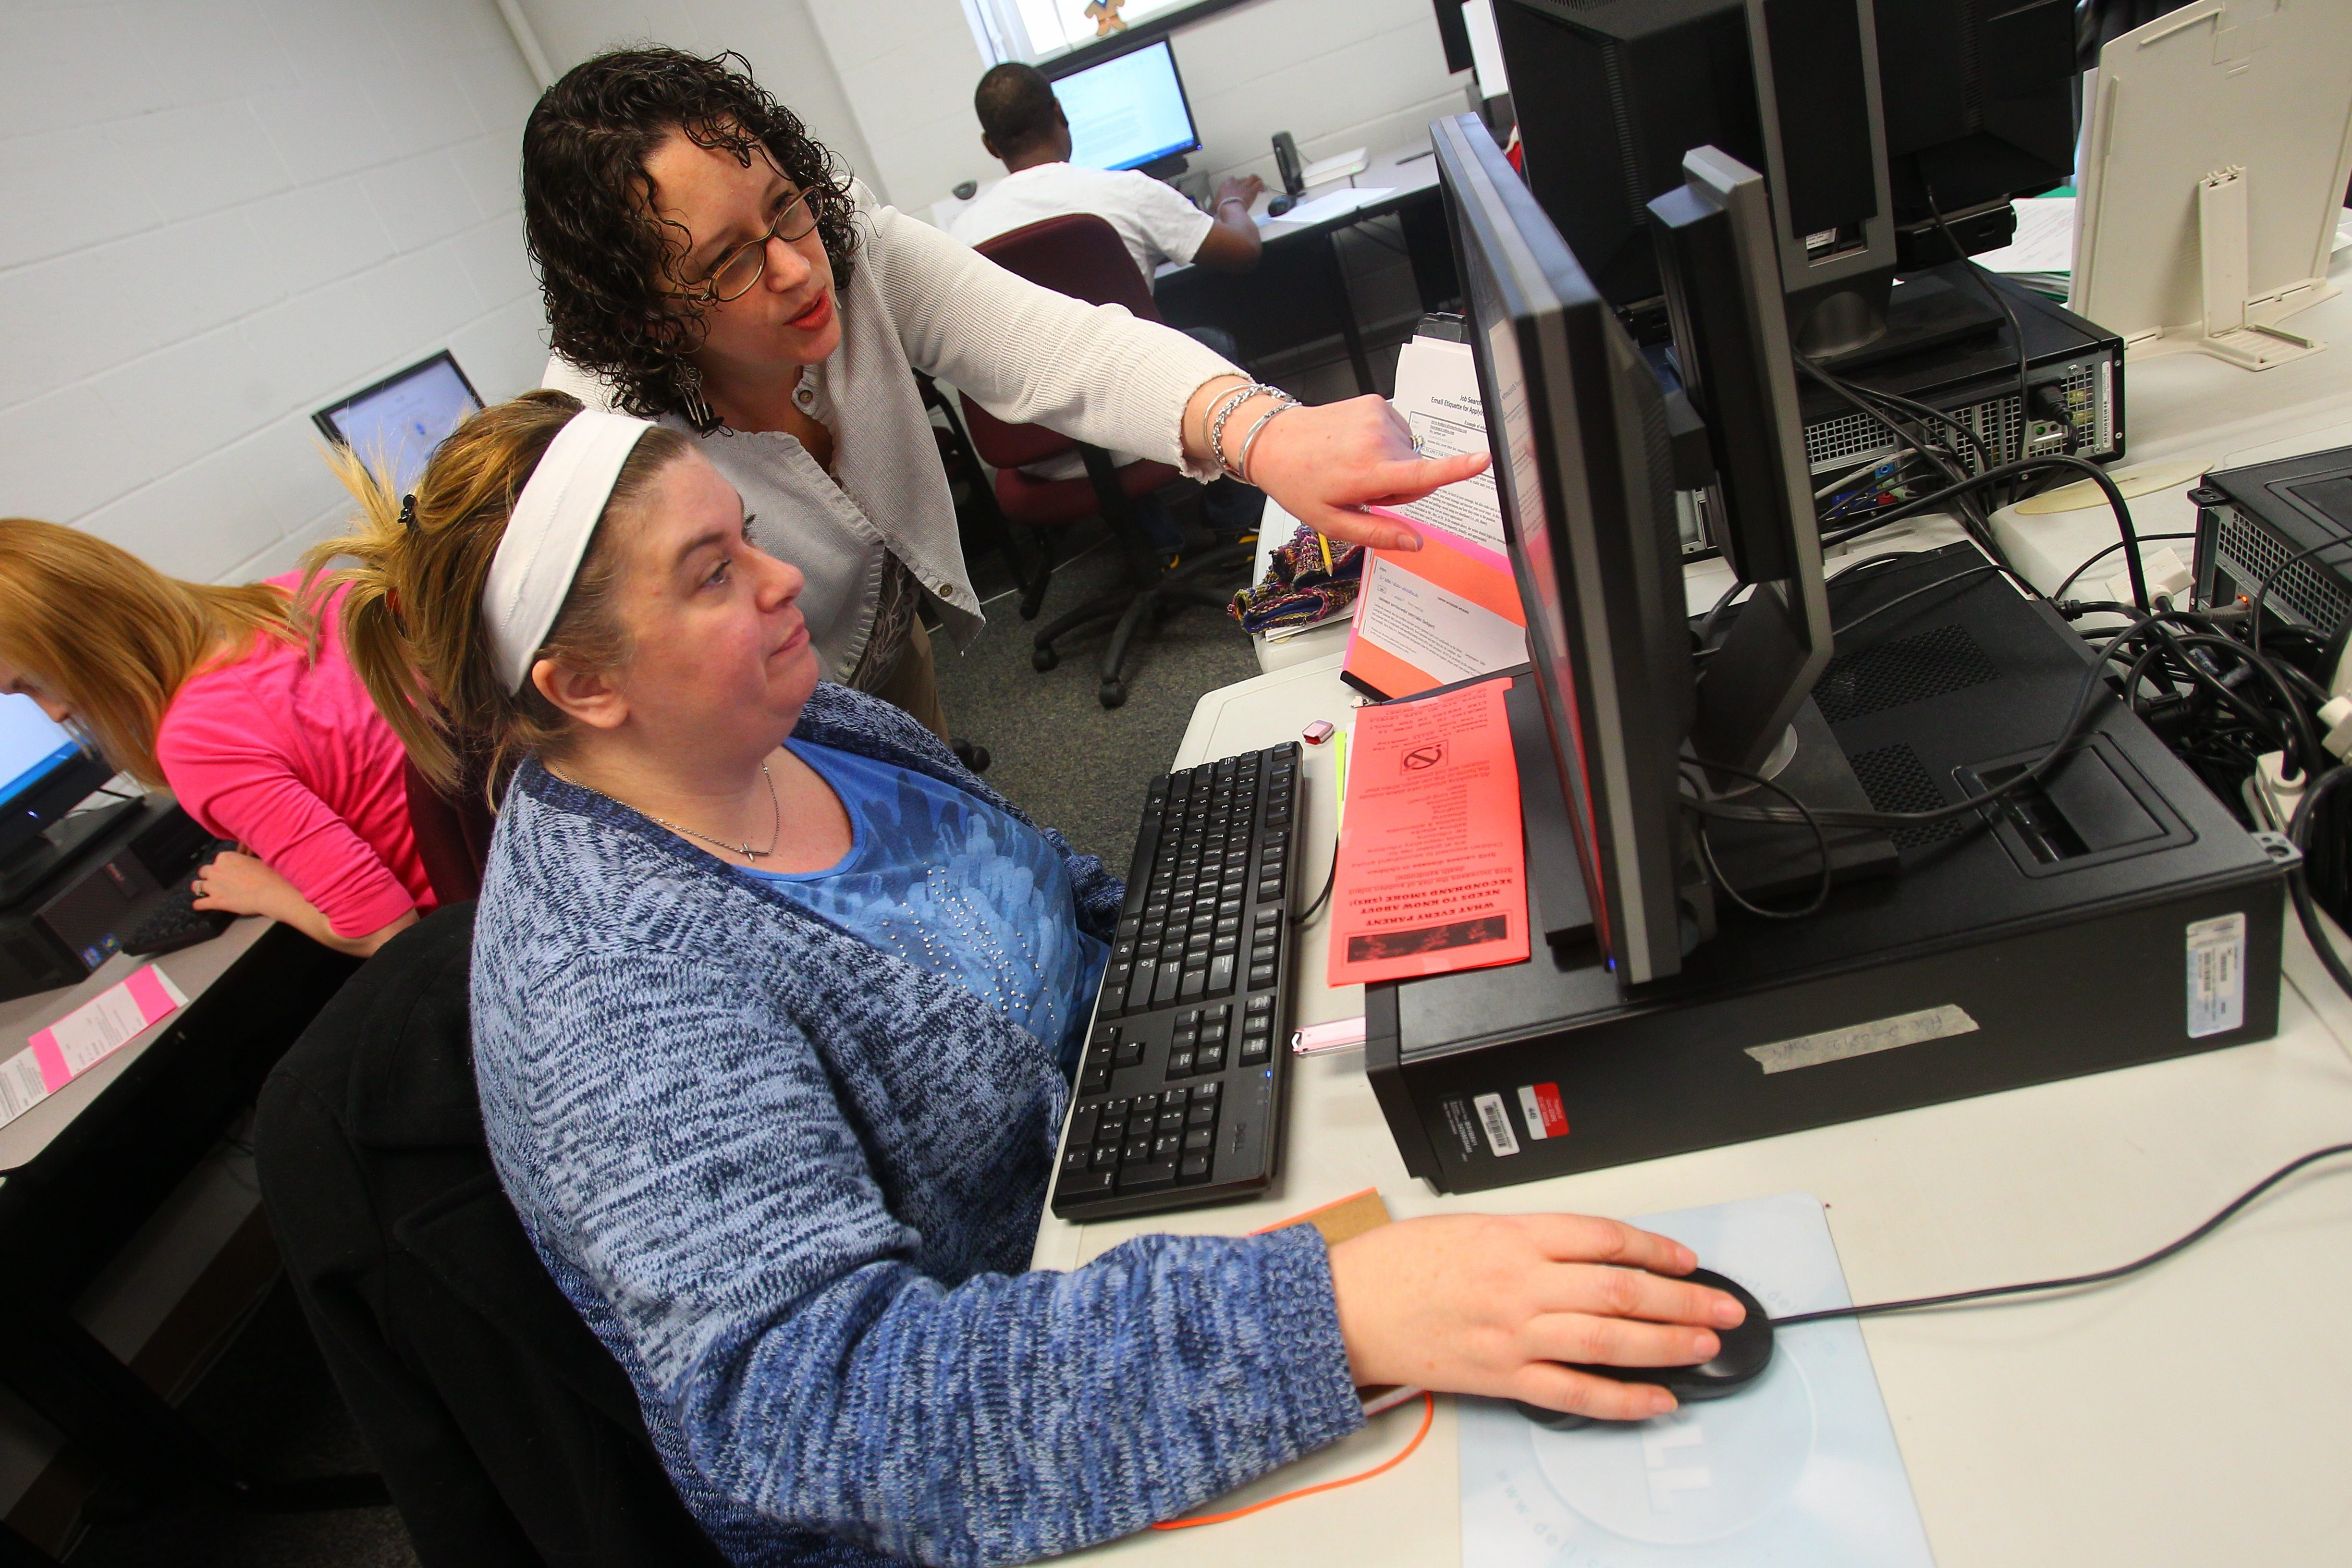 Jessica Bush, a member of the Orleans-Niagara BOCES staff, offers pointers on sending résumés by email to Kristen Frain, who recently lost her job, during adult literacy class at Christ Community Church in Lockport.